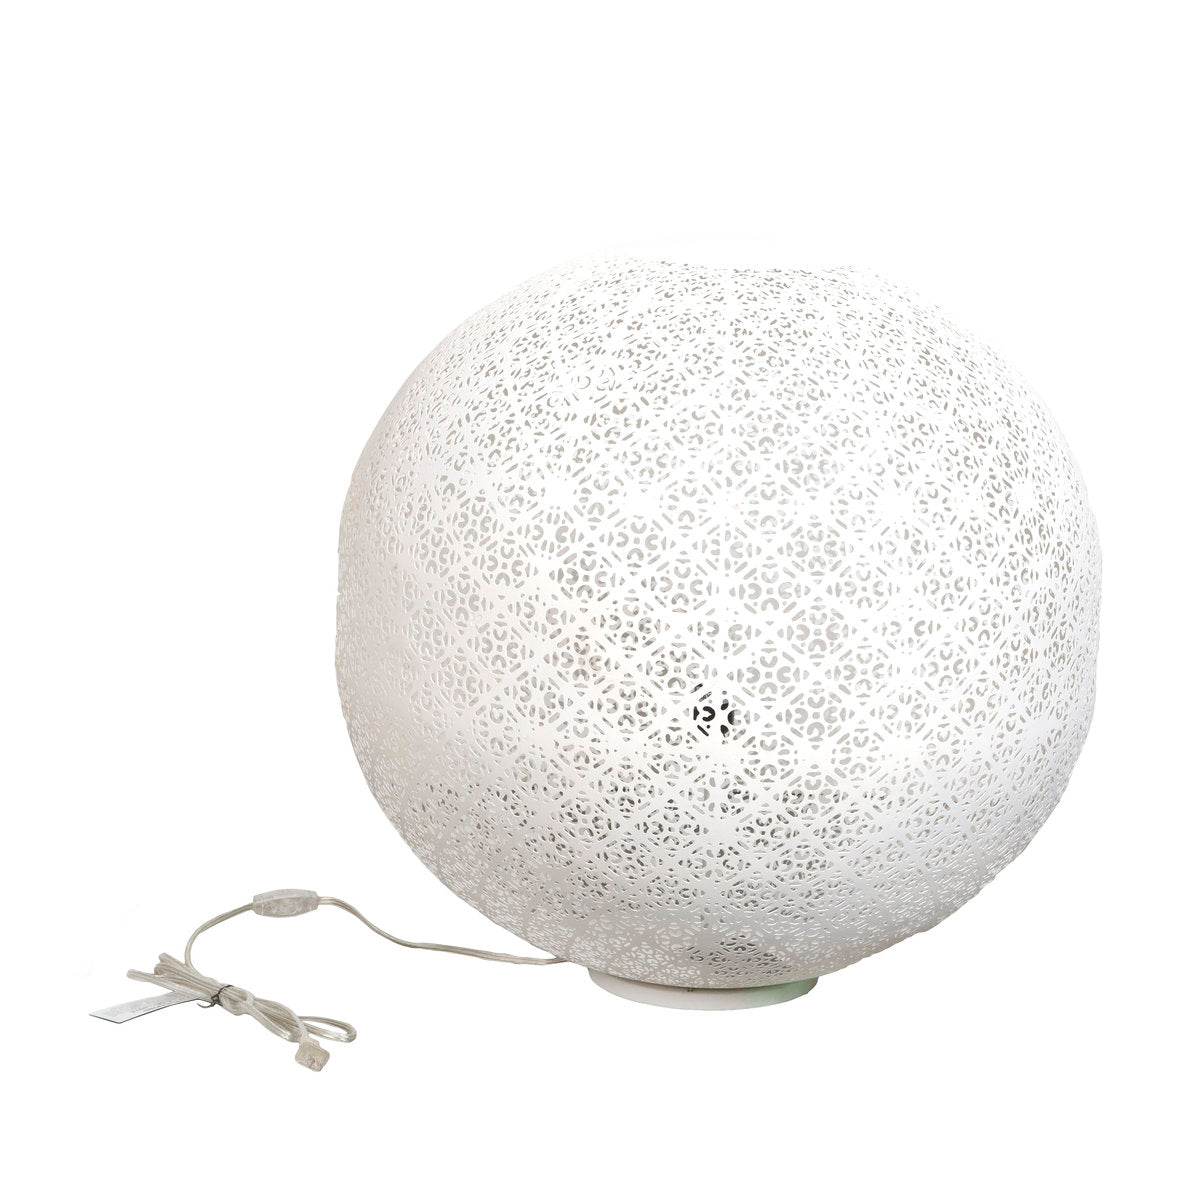 LUNA REGULAR GLOBE TABLE LAMP